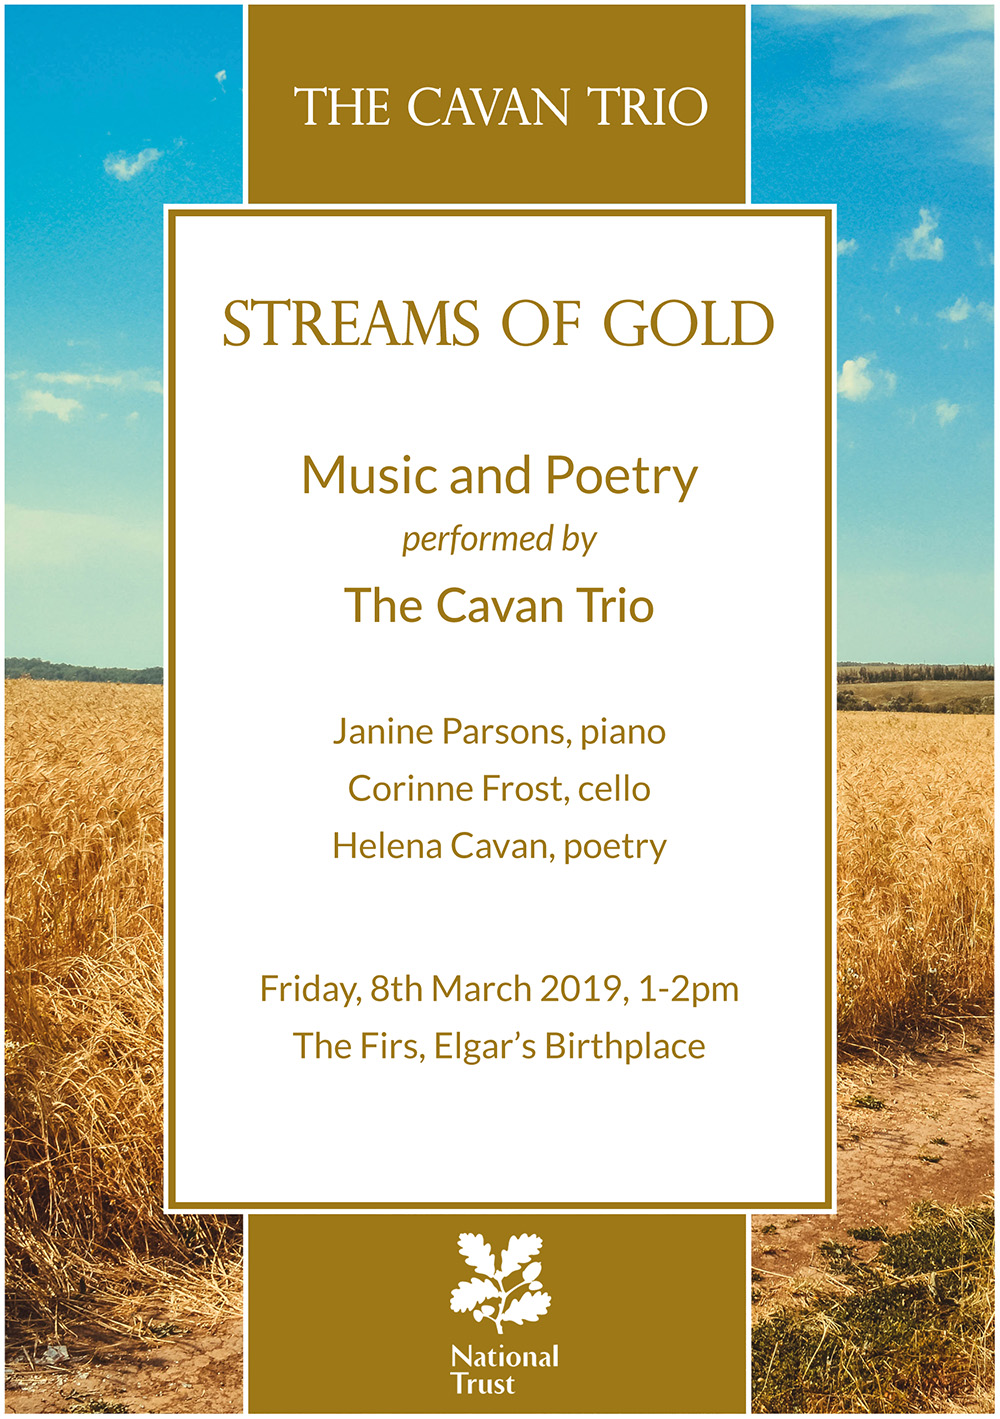 Streams of gold programme 1.jpg